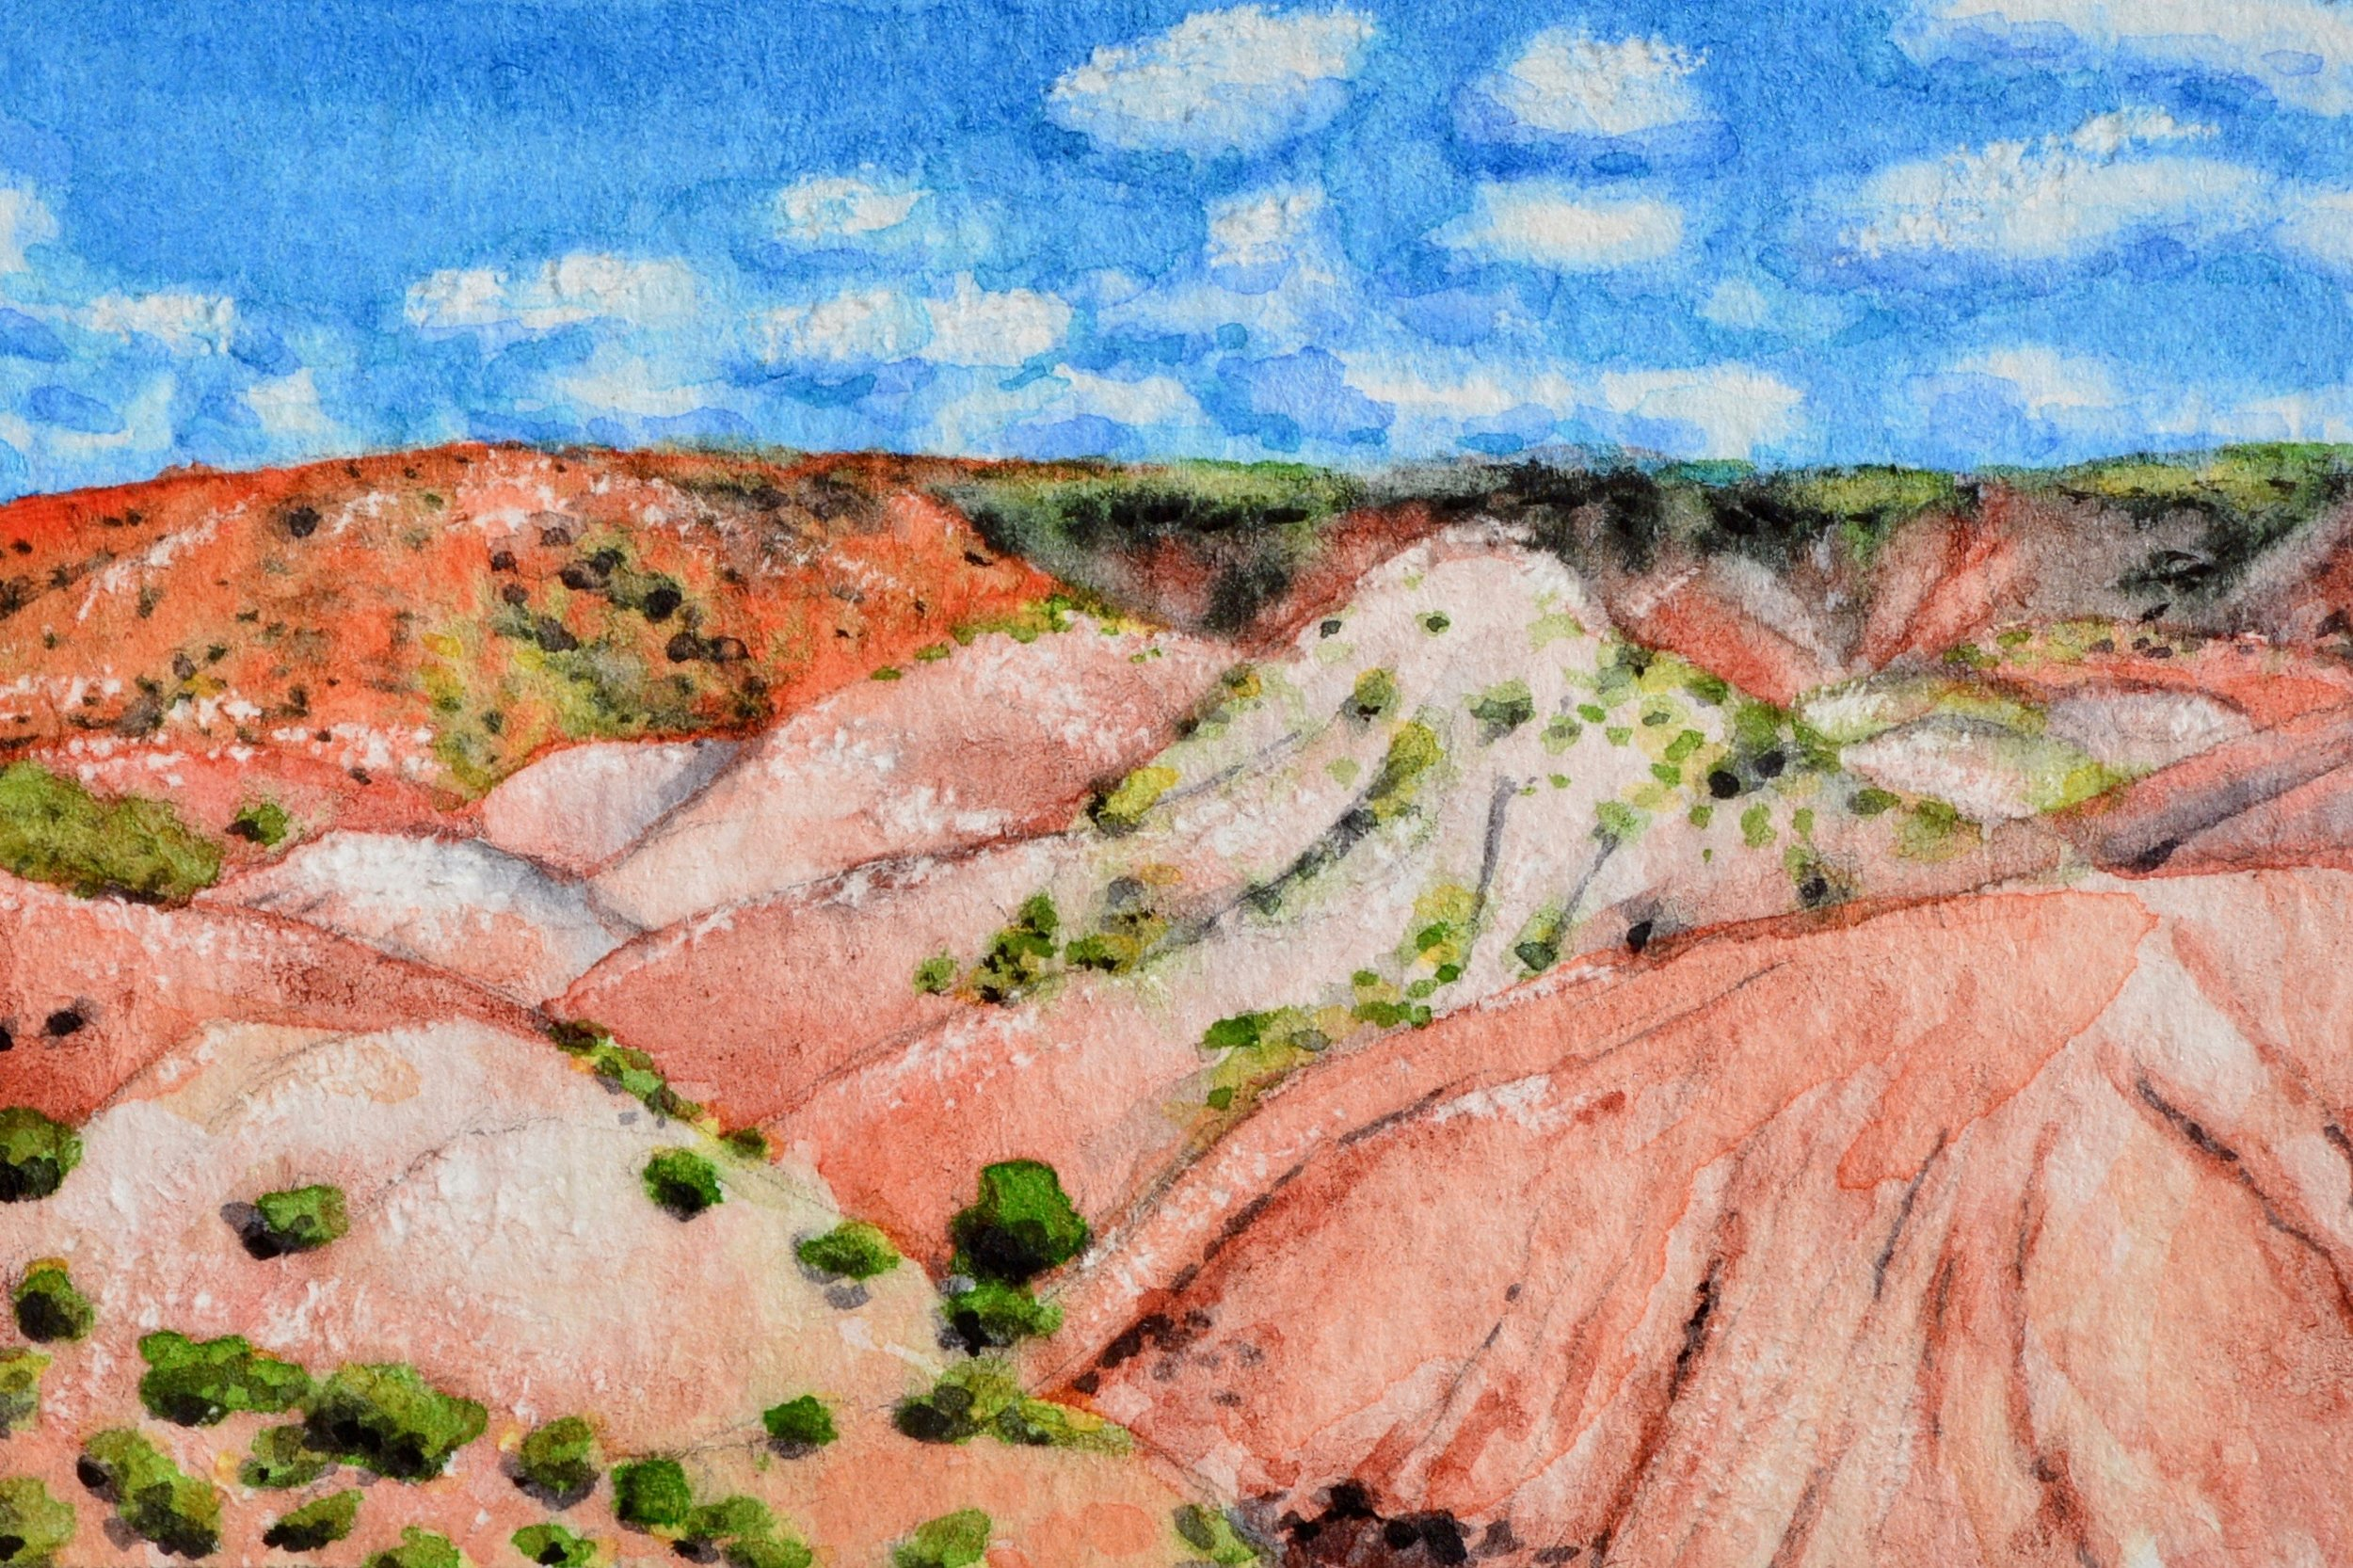 """Petrified Forest National Park, Arizona: 6/7/19, 12:44:05"" 3x2"" watercolor on 140 lb. watercolor paper For sale as of this blog posting -  visit my online shop  to purchase."